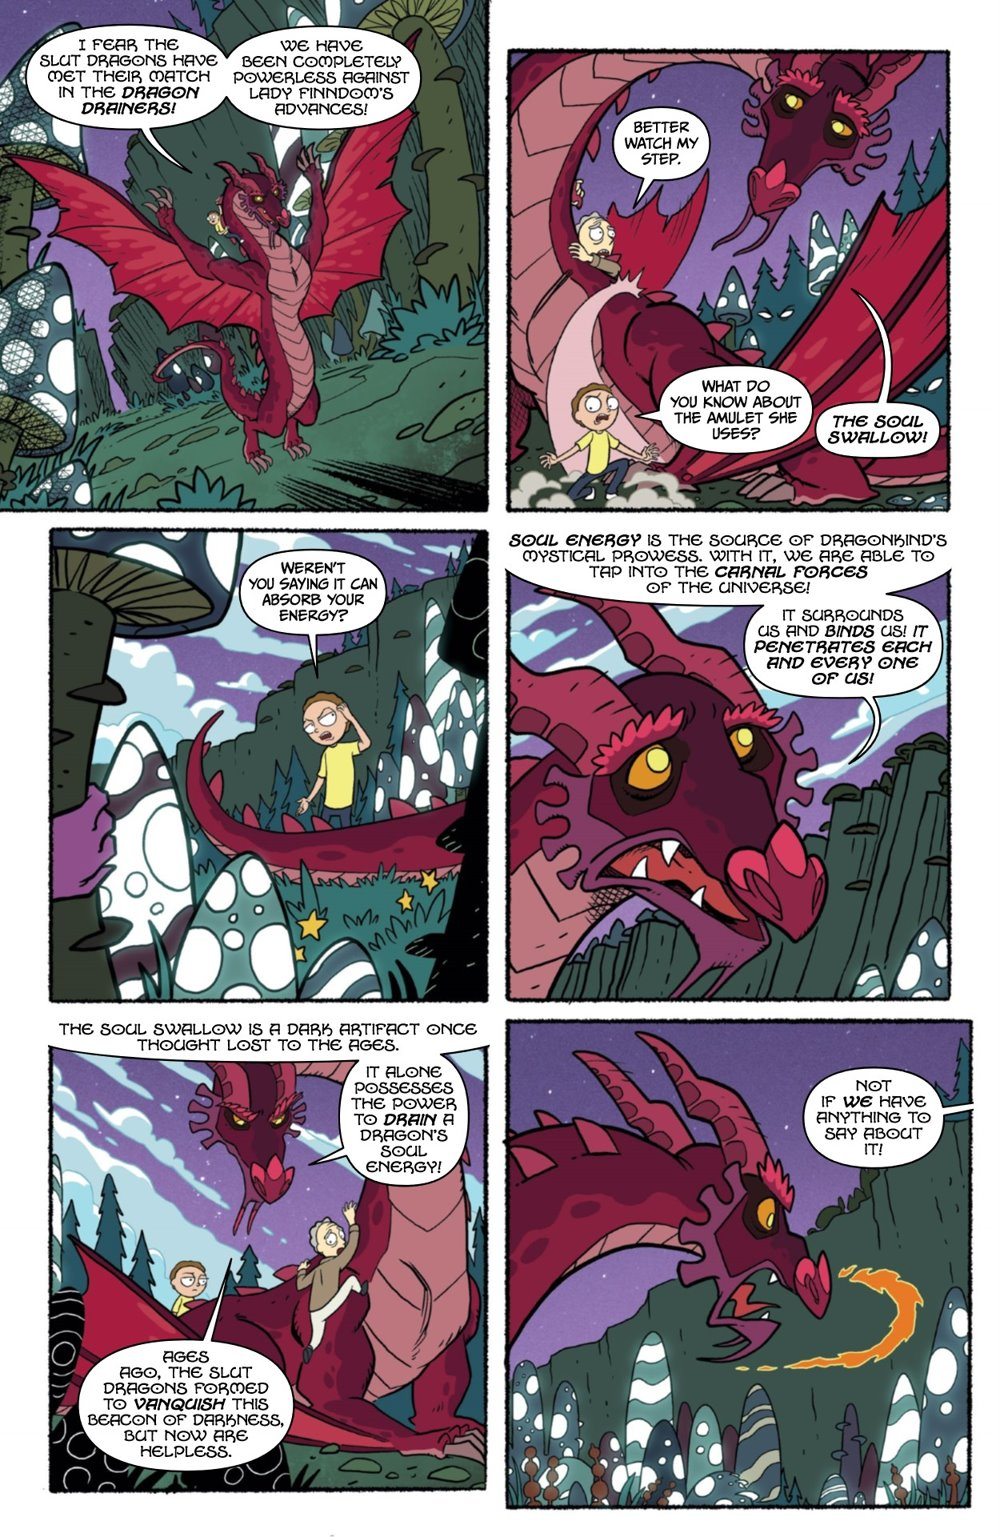 RICKMORTY-WORLDSAPART-2-REFERENCE-10 ComicList Previews: RICK AND MORTY WORLDS APART #2